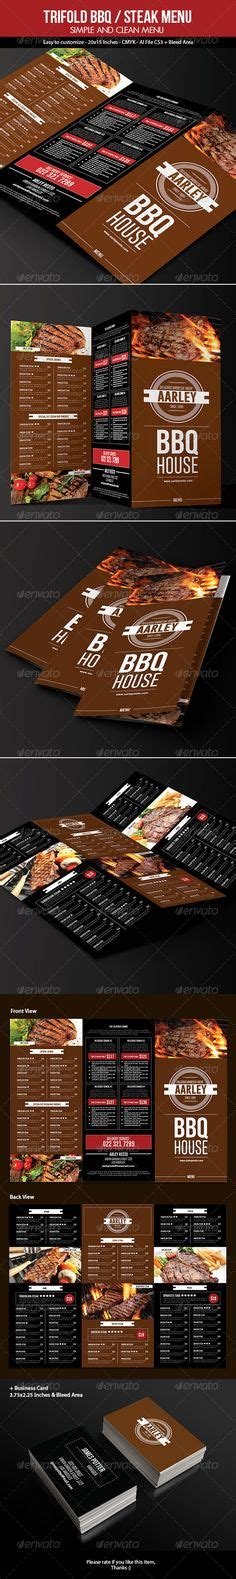 bbq  grill menu templates images food menu